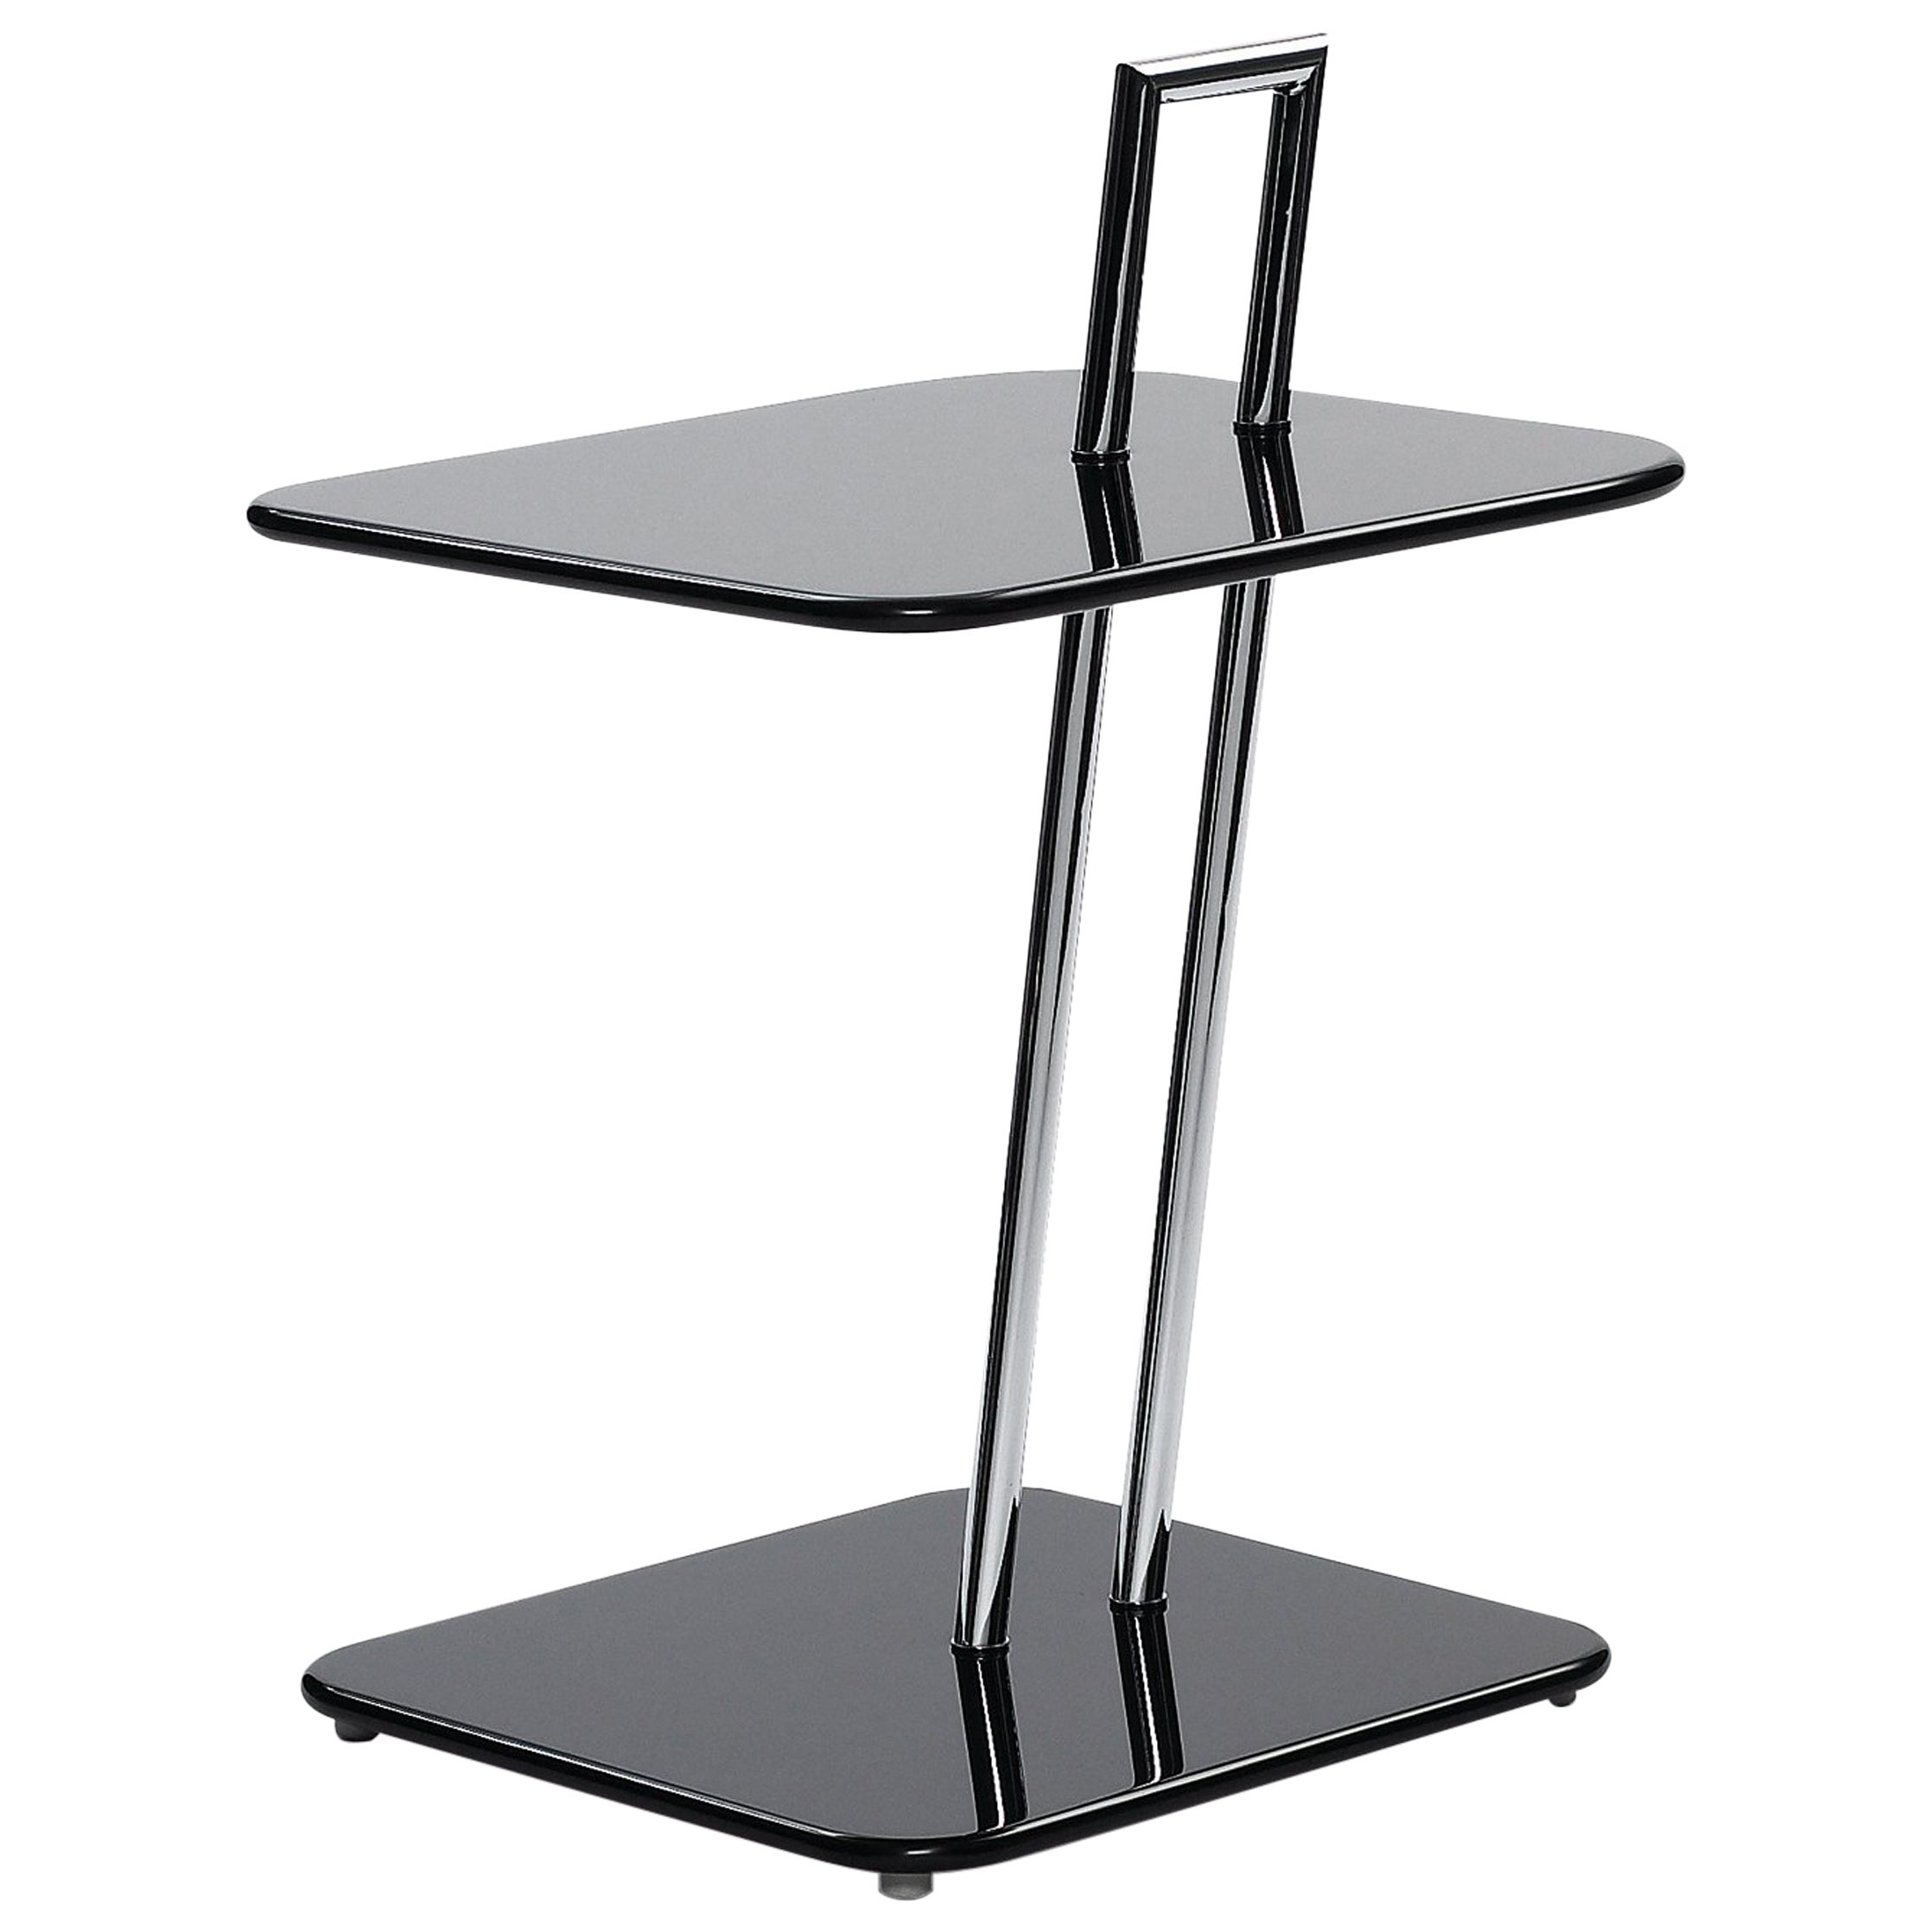 ClassiCon Occasional Rectangular Side Table in Black by Eileen Gray